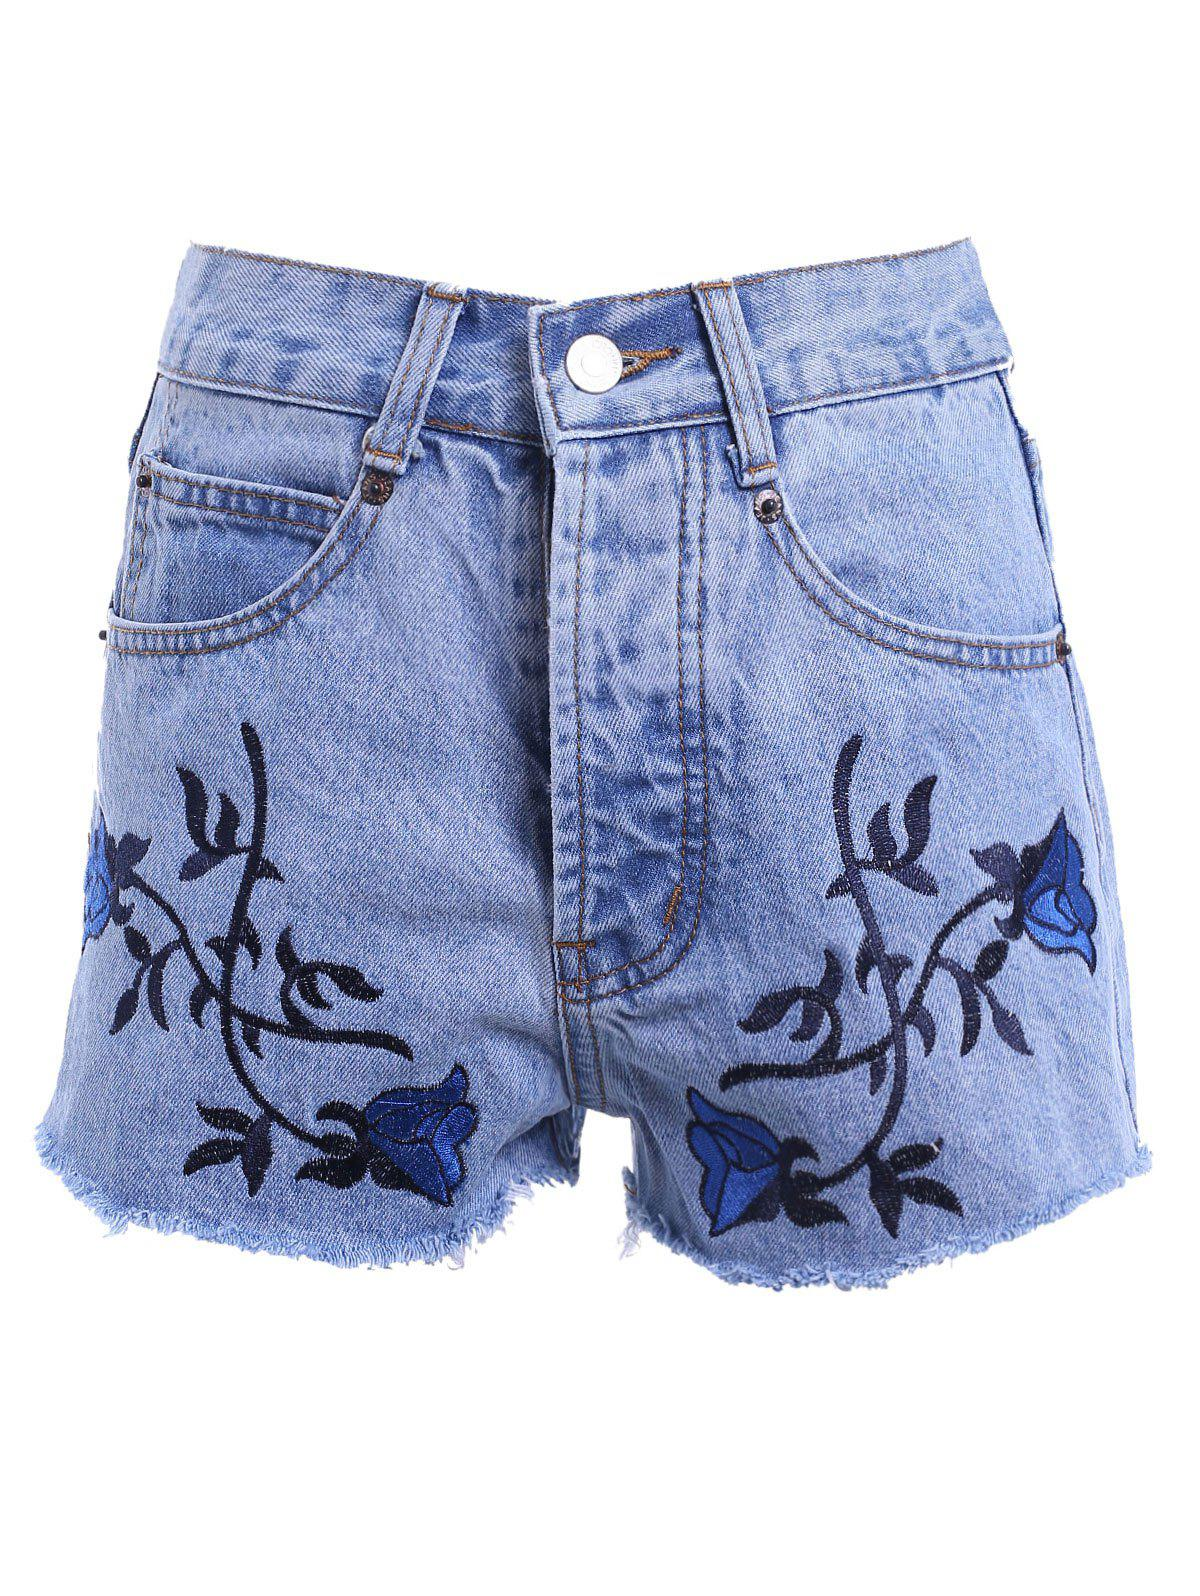 Vintage Style Women's High Waist Raw Edged Floral Embellished Denim Shorts - LIGHT BLUE 3XL